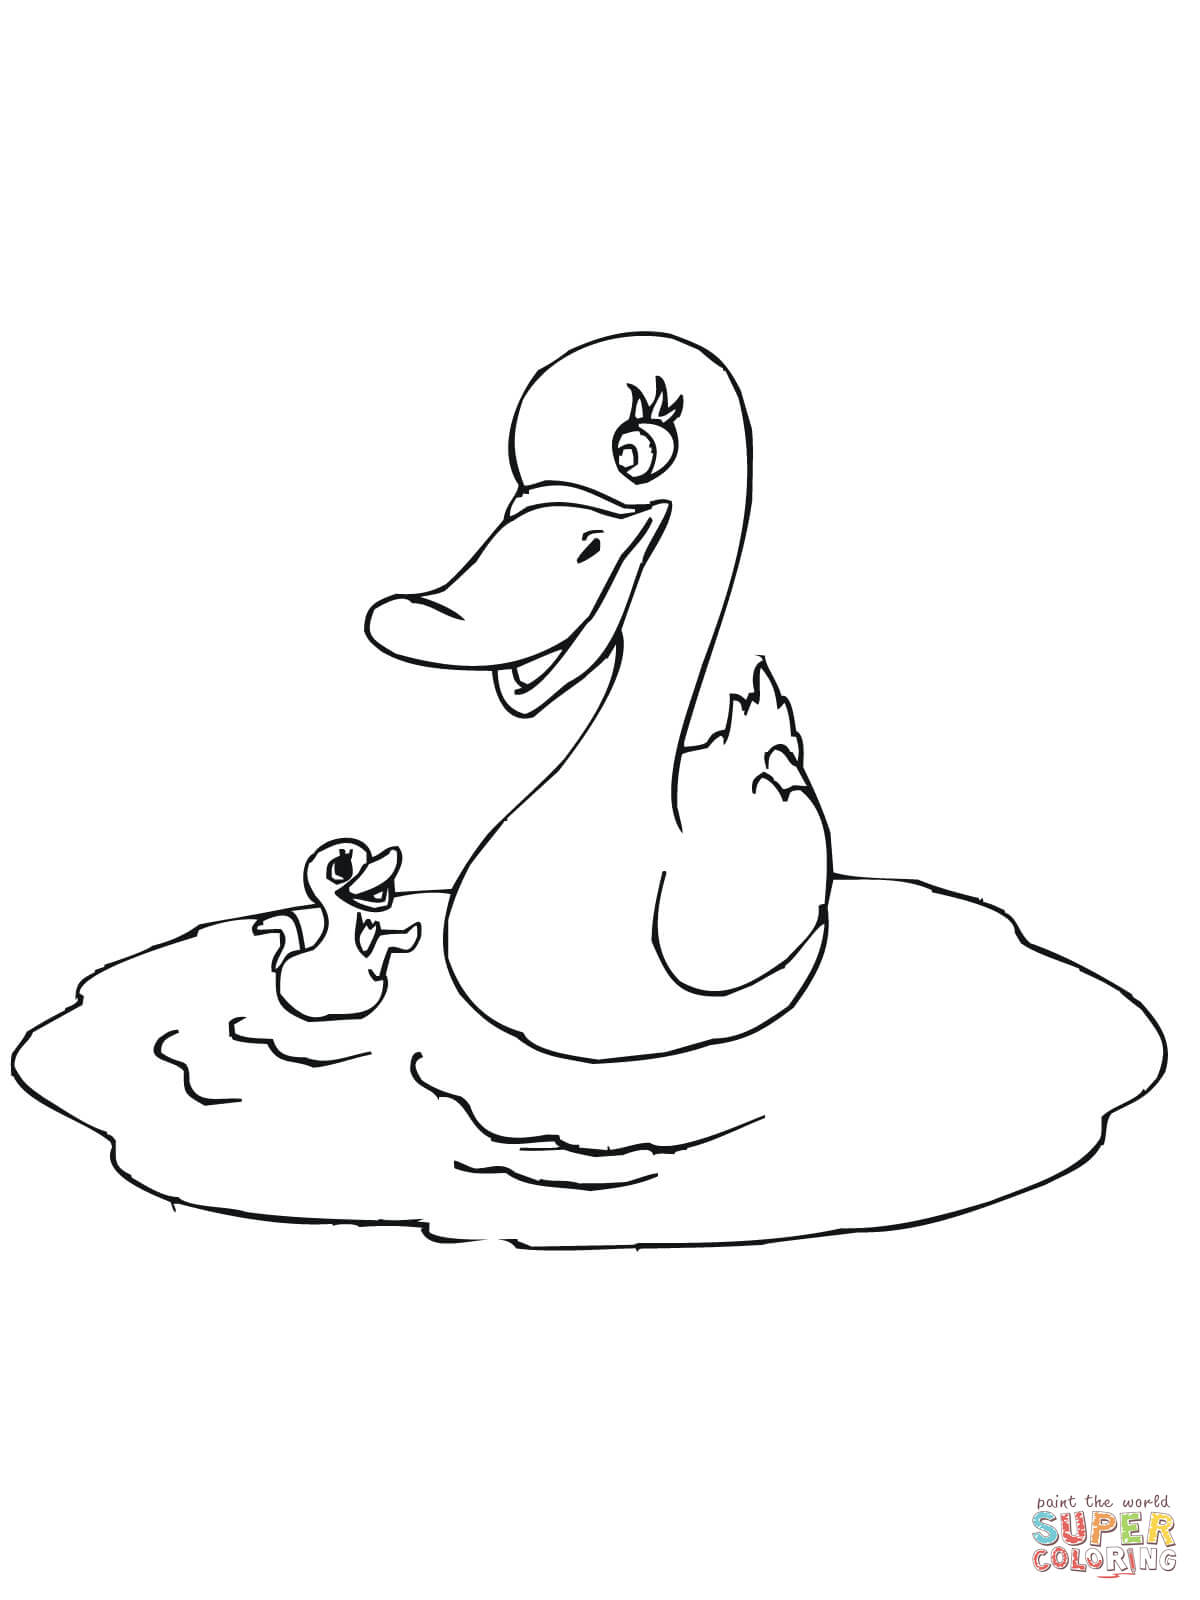 Mother Duck with Baby coloring page.